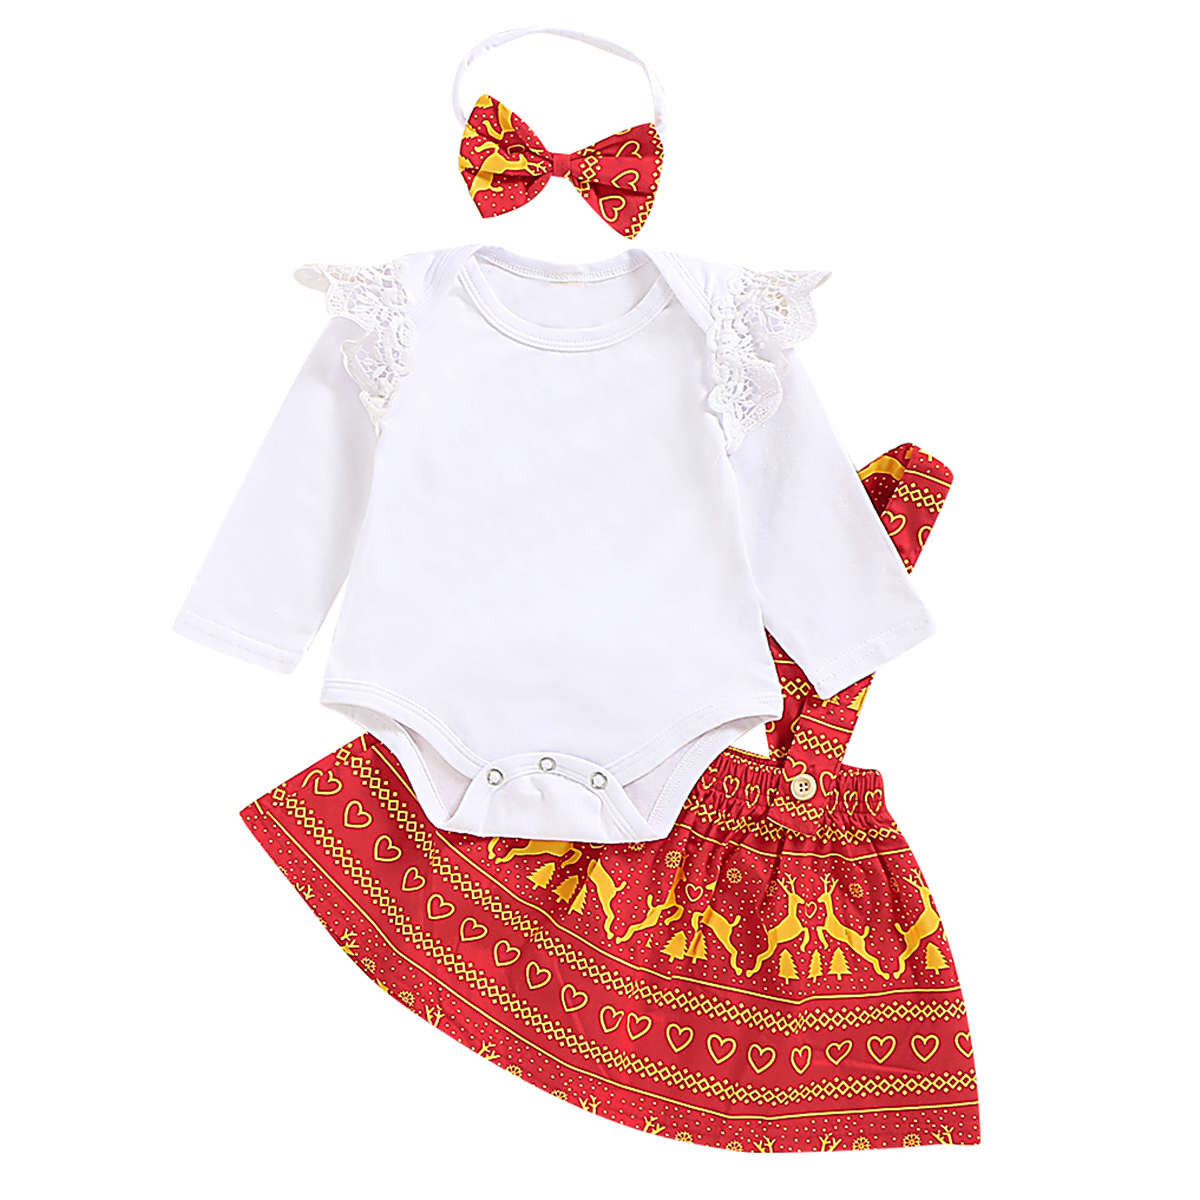 2019 Cute Newborn Christmas Sets Baby Girl Clothes Lace Ruffles Romper+<font><b>Bibs</b></font> <font><b>Skirt</b></font>+Headband 3Pcs Baby Girl Xmas Outfits 0-18M image